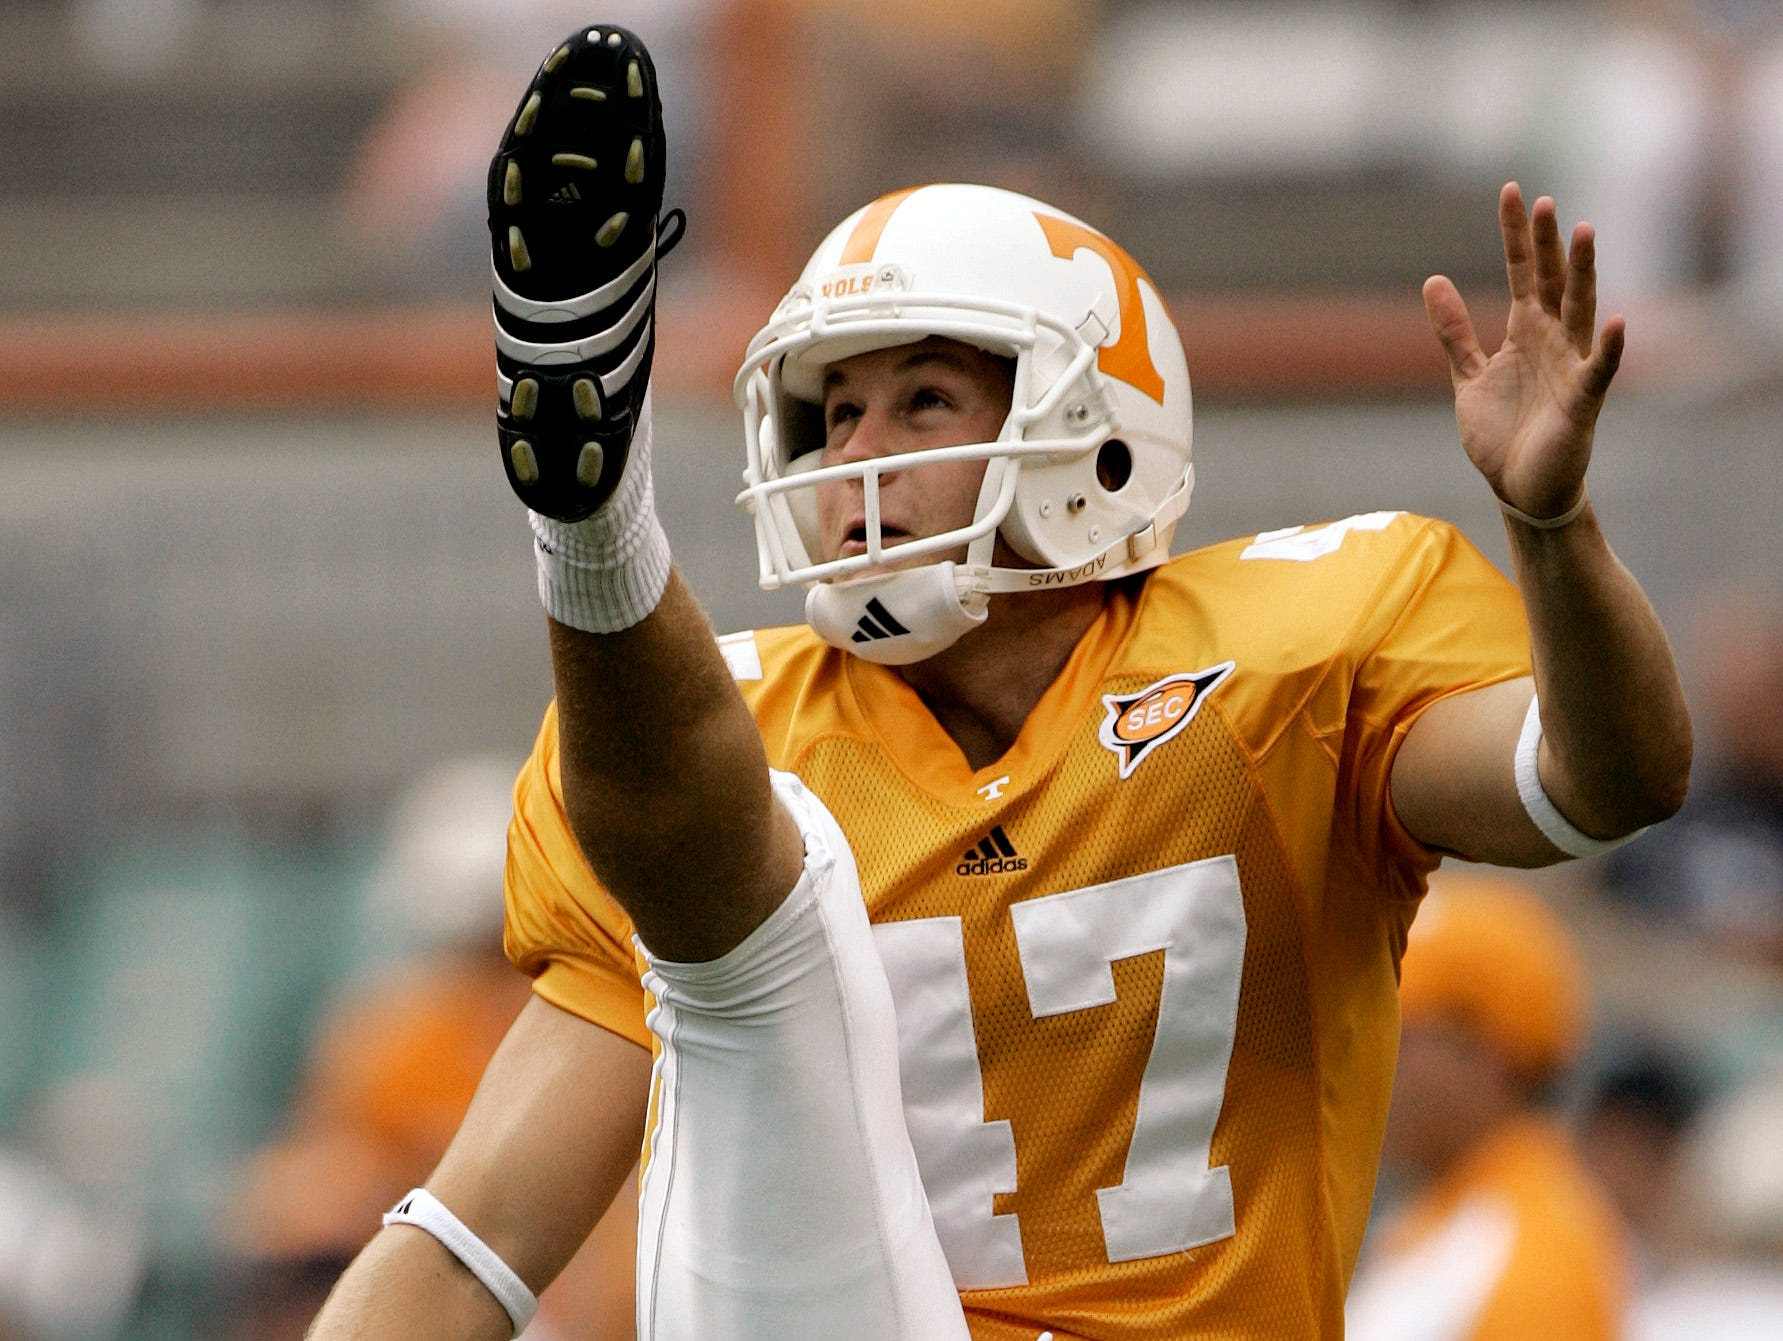 Tennessee punter Britton Colquitt warms up prior to a college football game against Air Force on Sept. 9, 2006 in Knoxville, Tenn. Colquitt, who comes from a family of punters, had a career night against Marshall on Sept. 23, 2006, with a personal best 56-yard average on three punts.